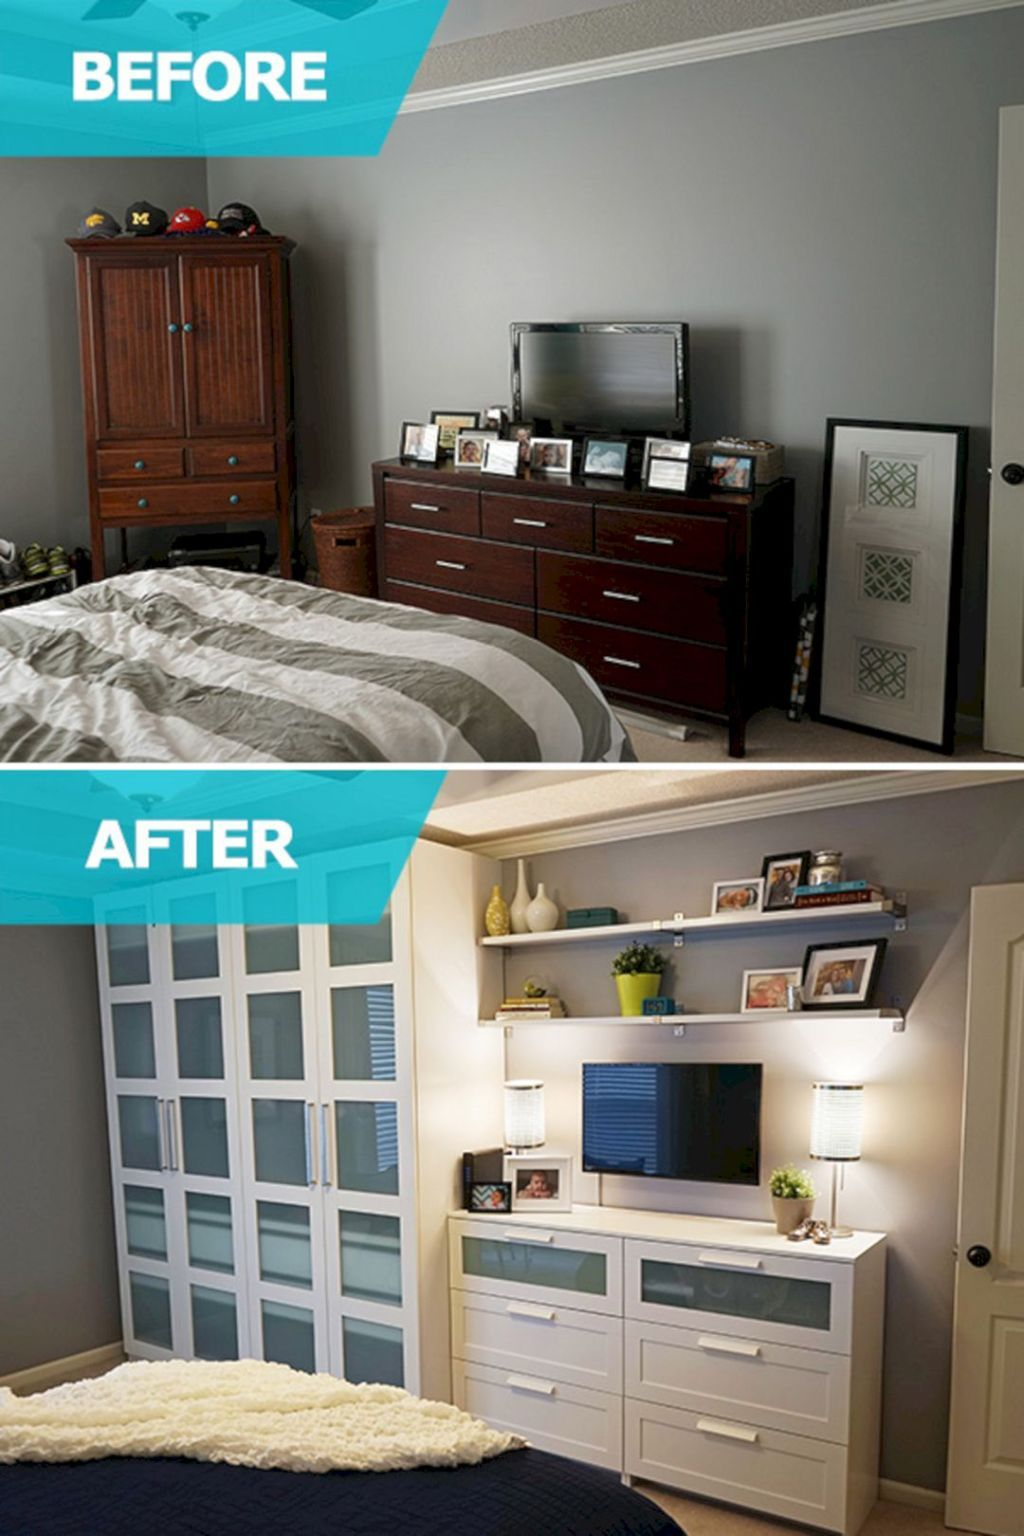 The Best Bedroom Storage Ideas For Small Room Spaces No 80 | Home ...